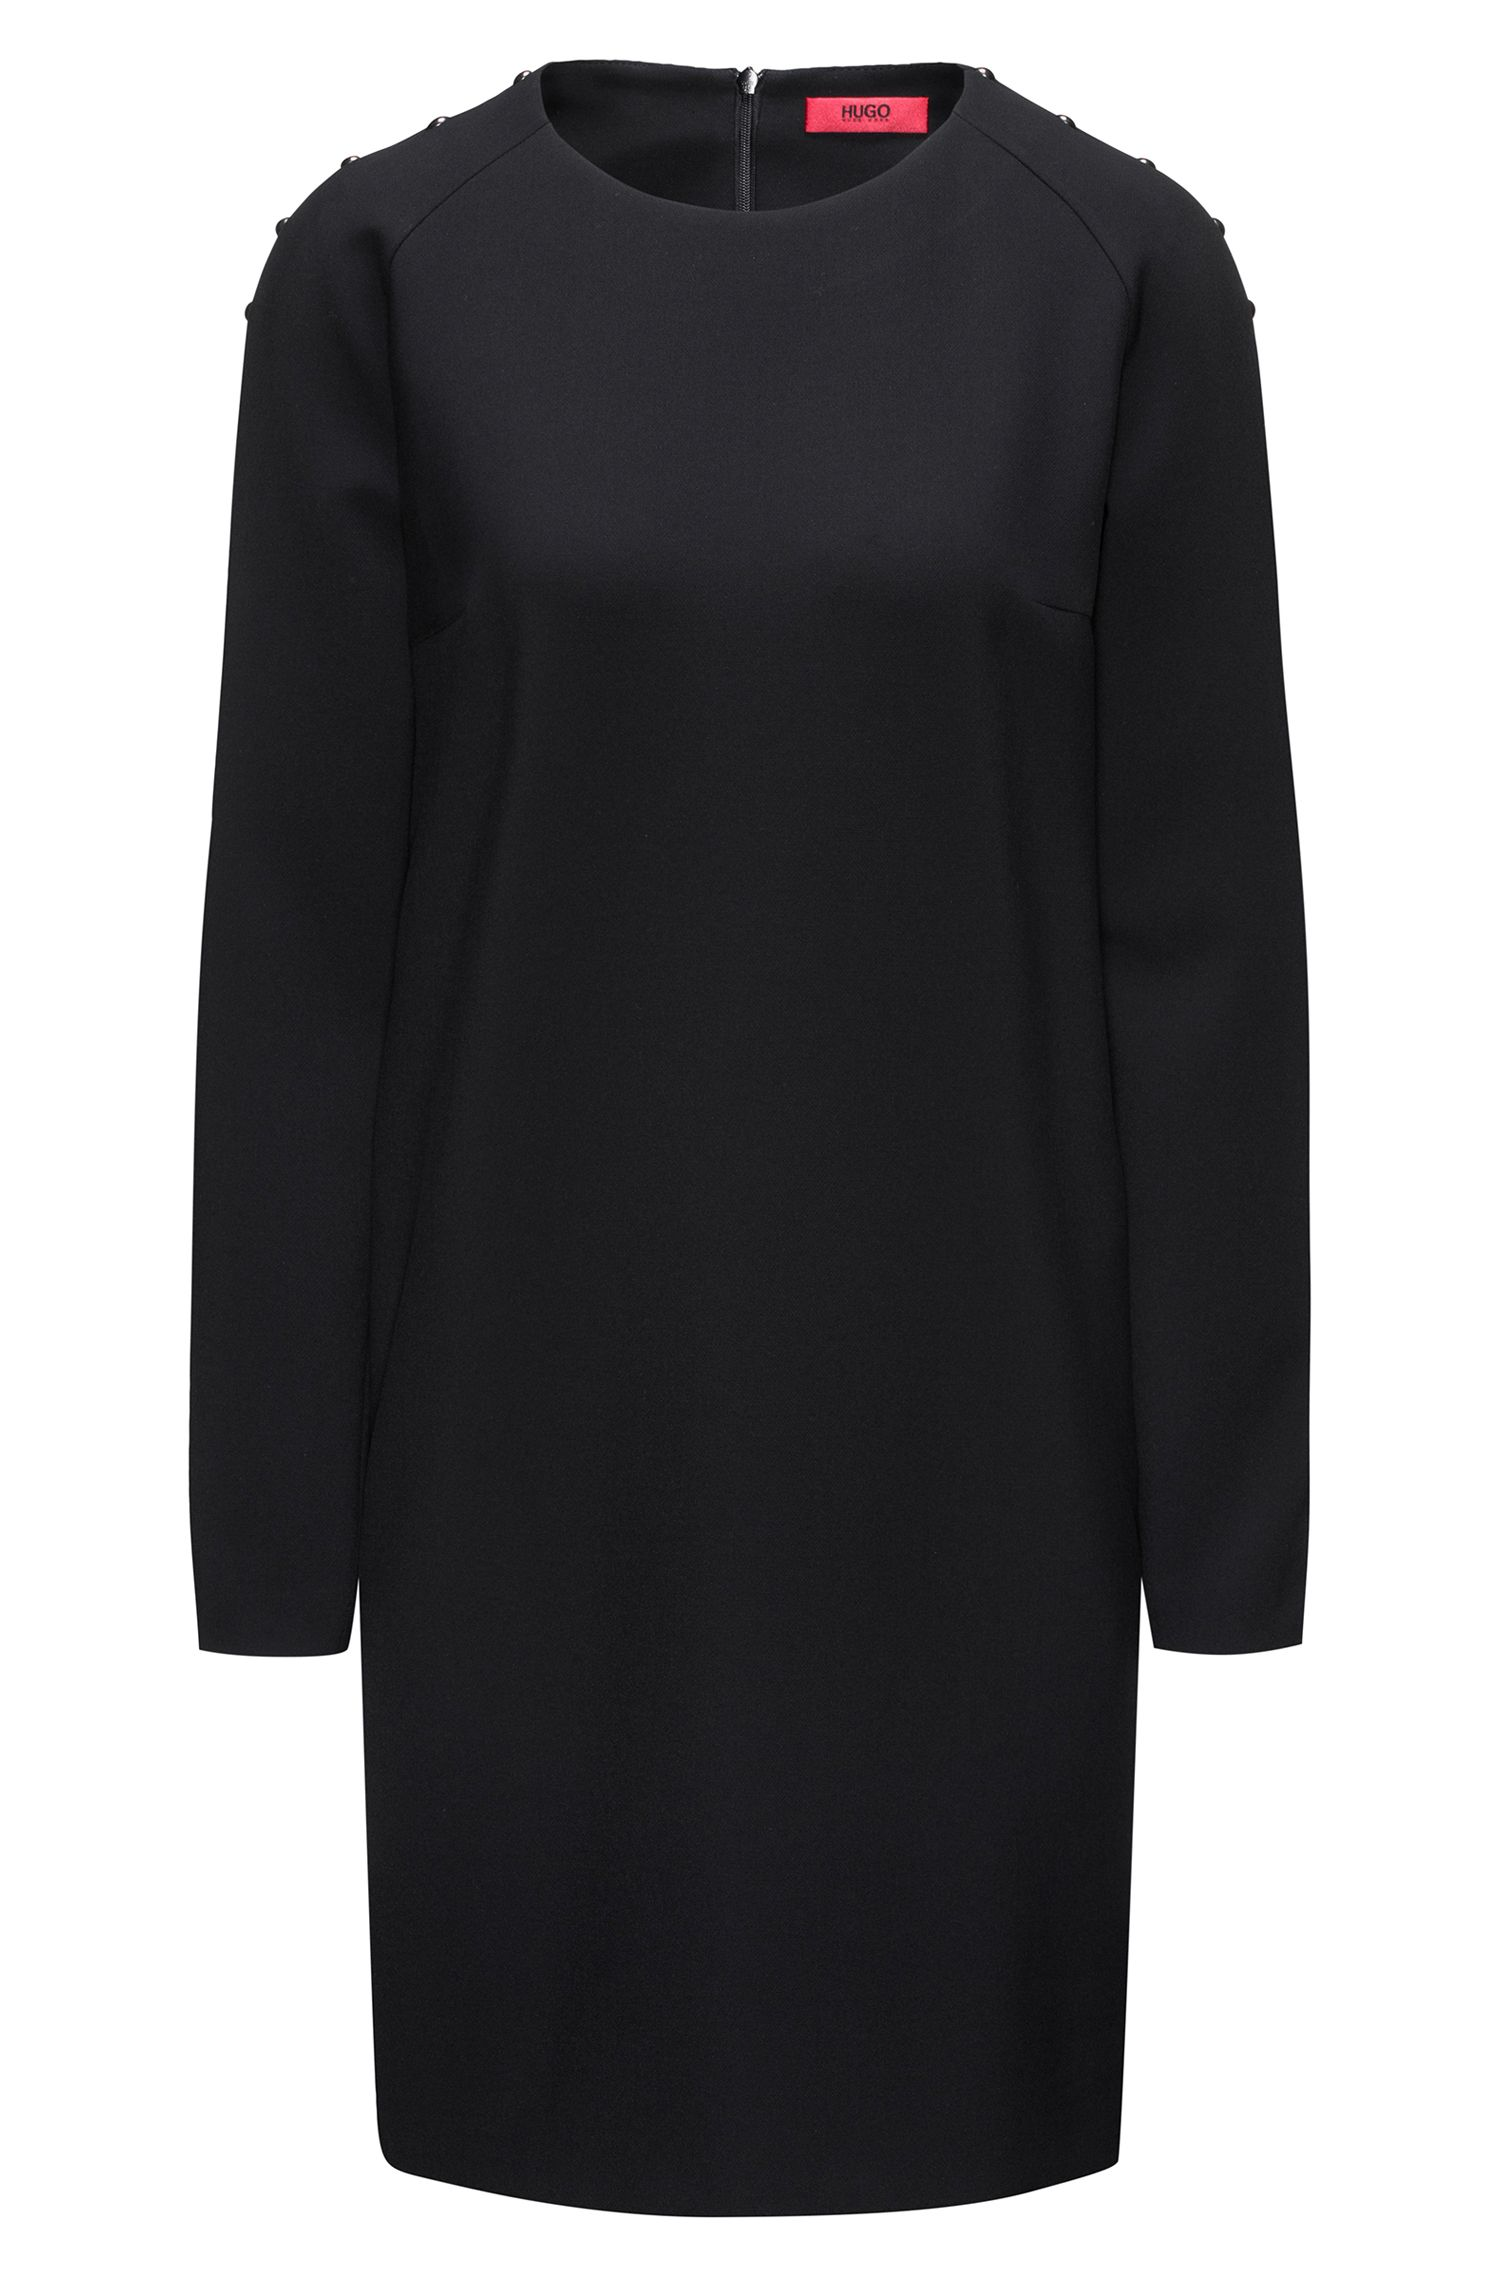 Long-sleeved dress with embellishments HUGO BOSS